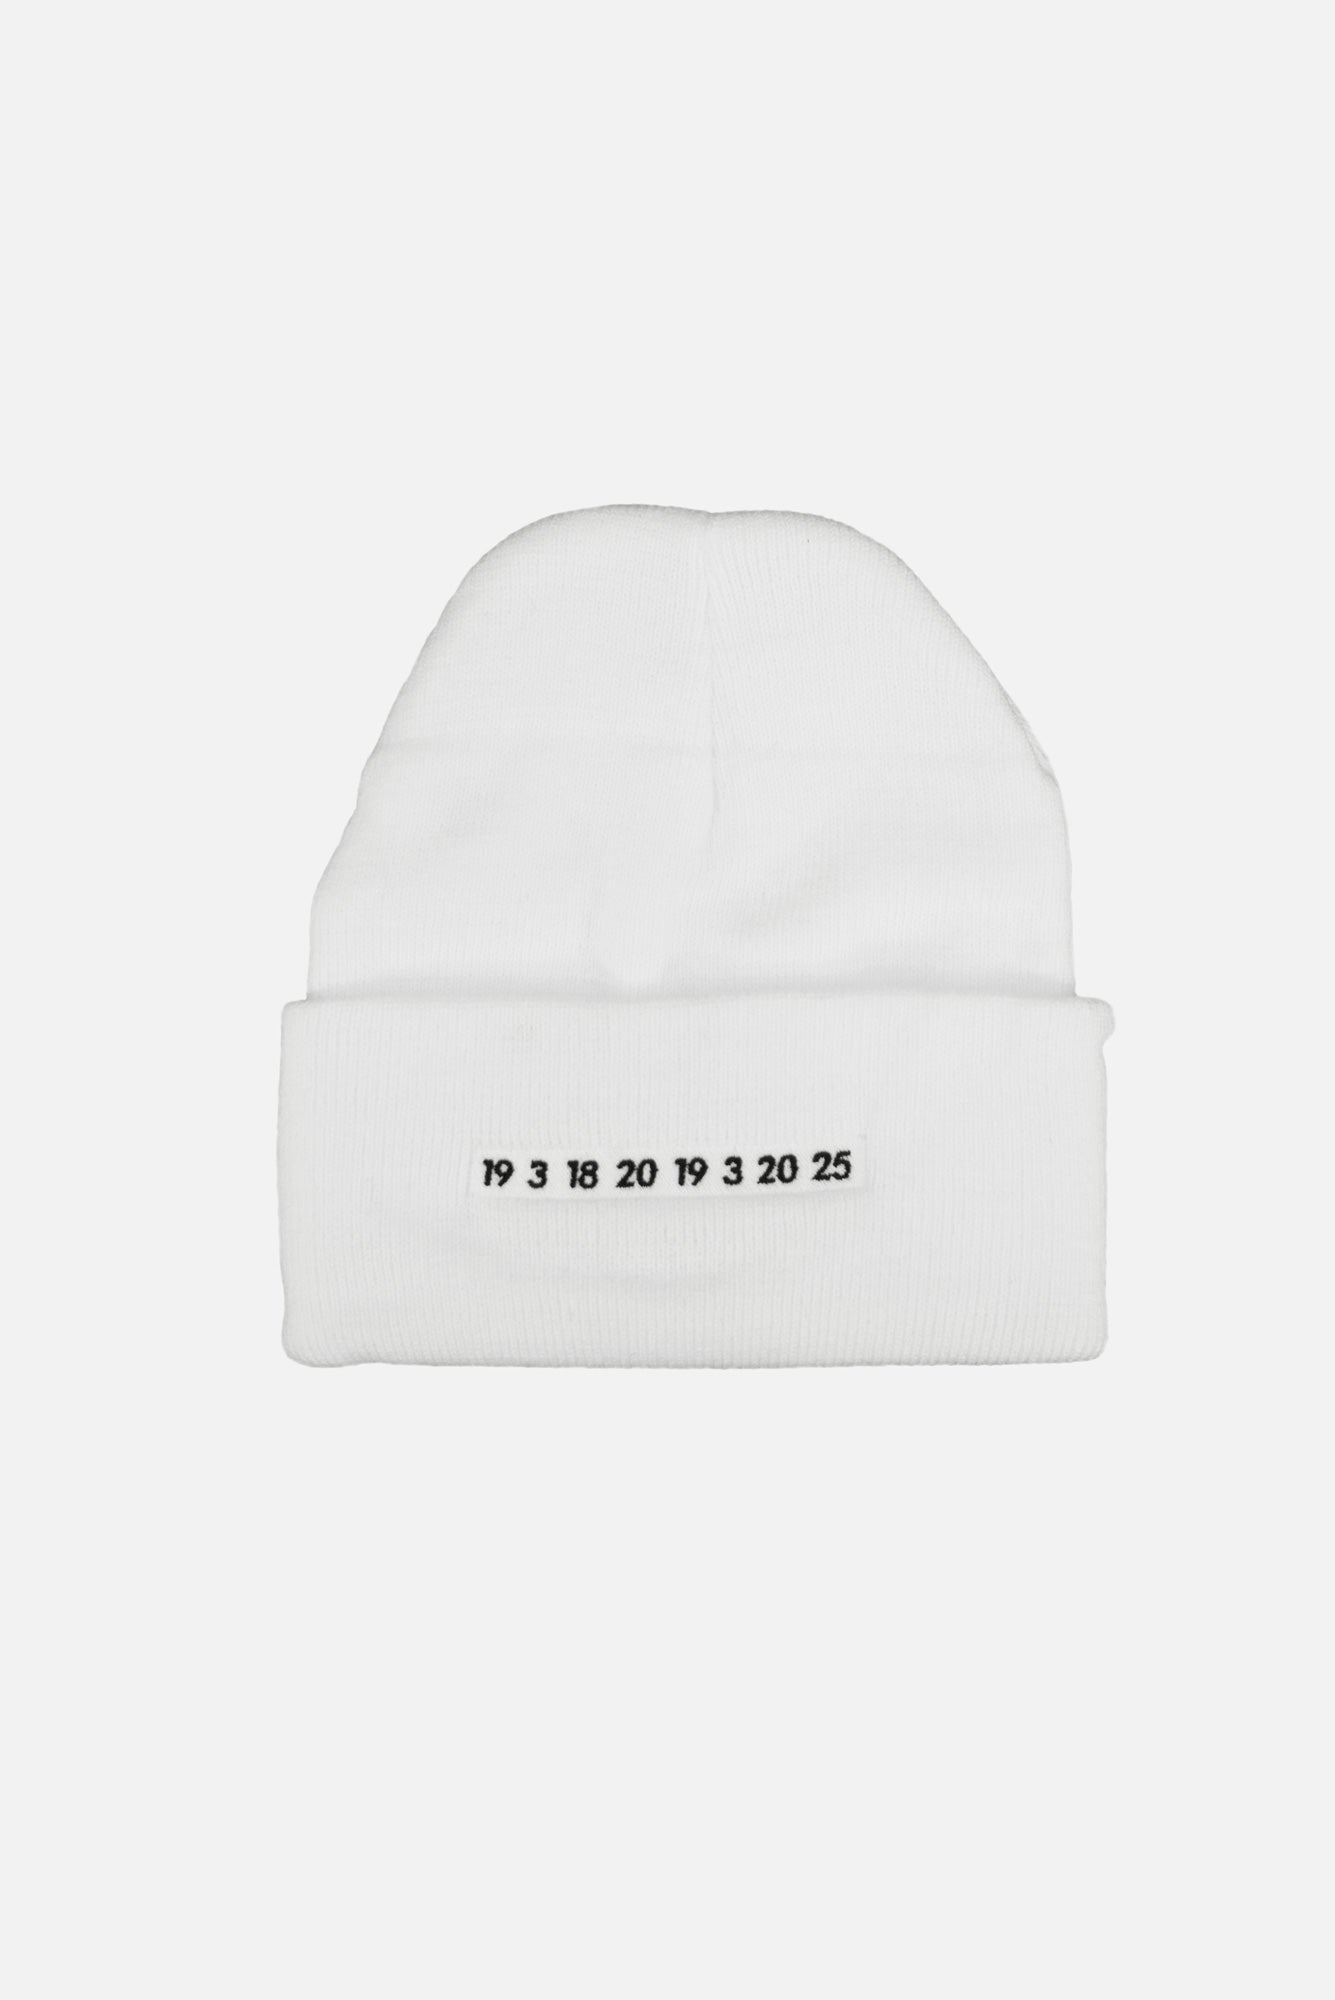 nieto article 7 numbers beanie - scrt society